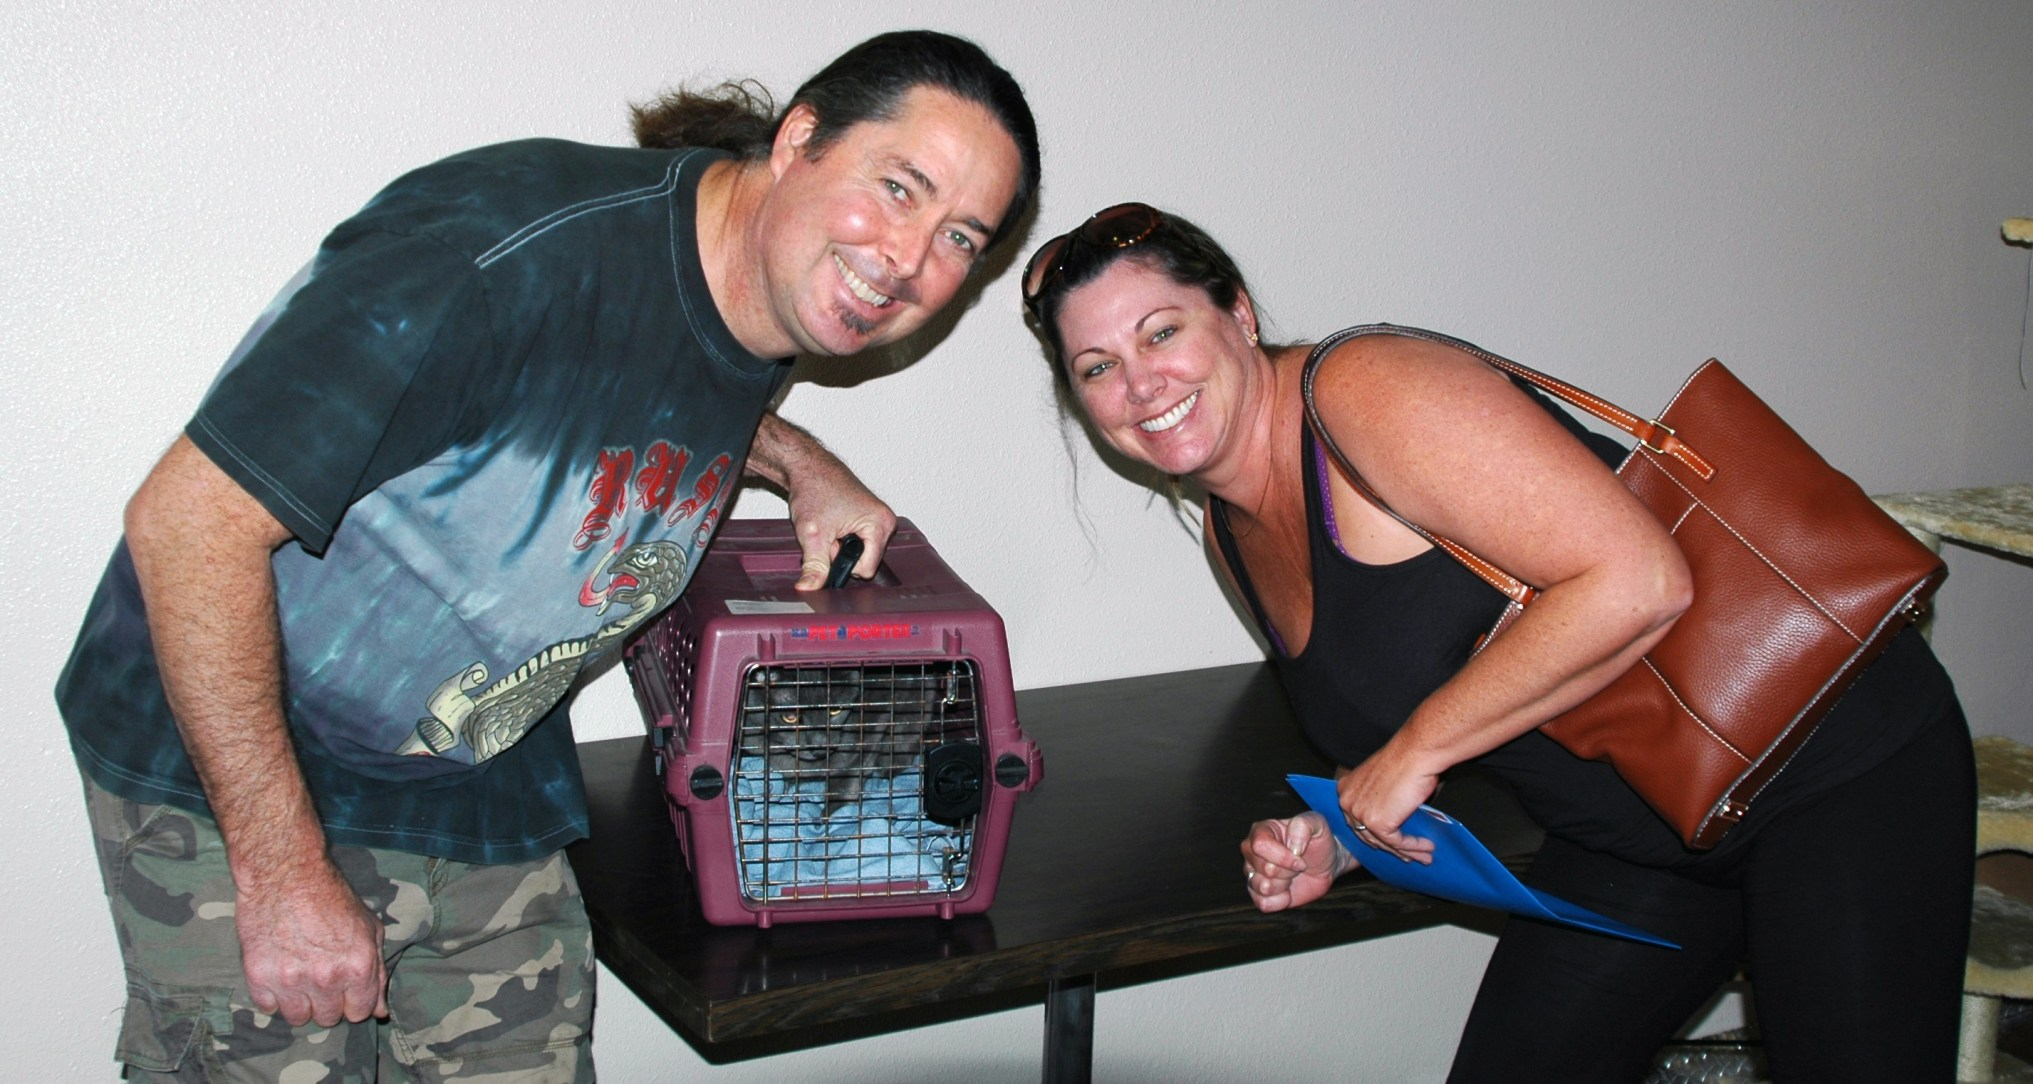 Emily Leaves The Cat Cafe for Her Forever Home